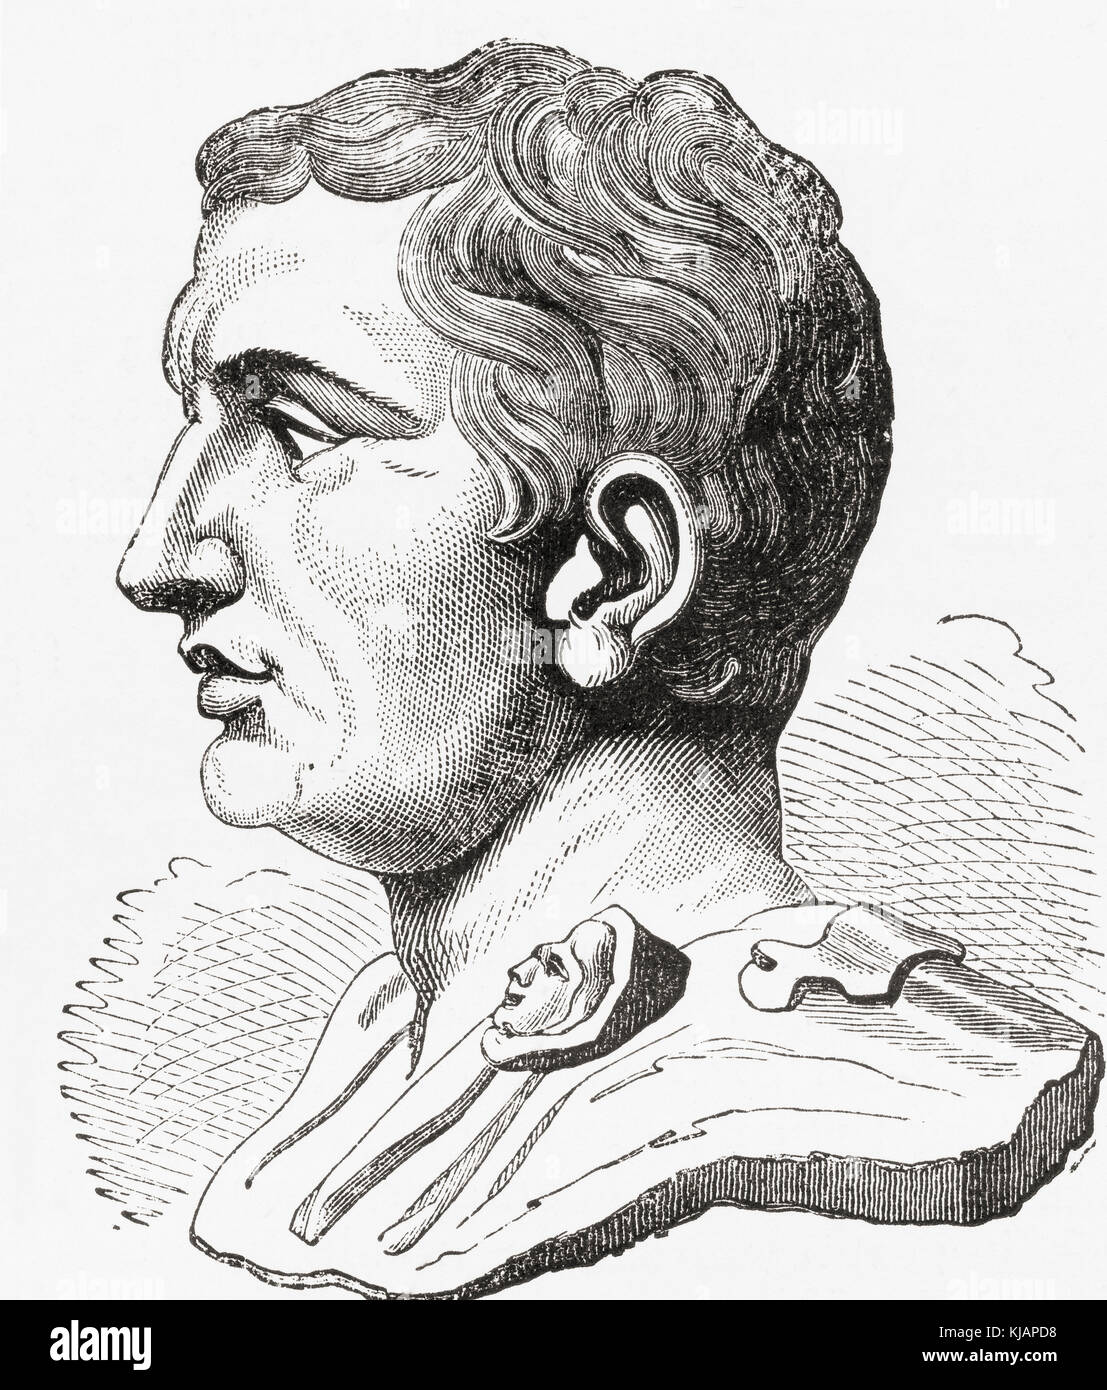 Gnaeus Pompeius Magnus,  106 - 48 BC, aka Pompey or Pompey the Great.  Military and political leader of the late - Stock Image